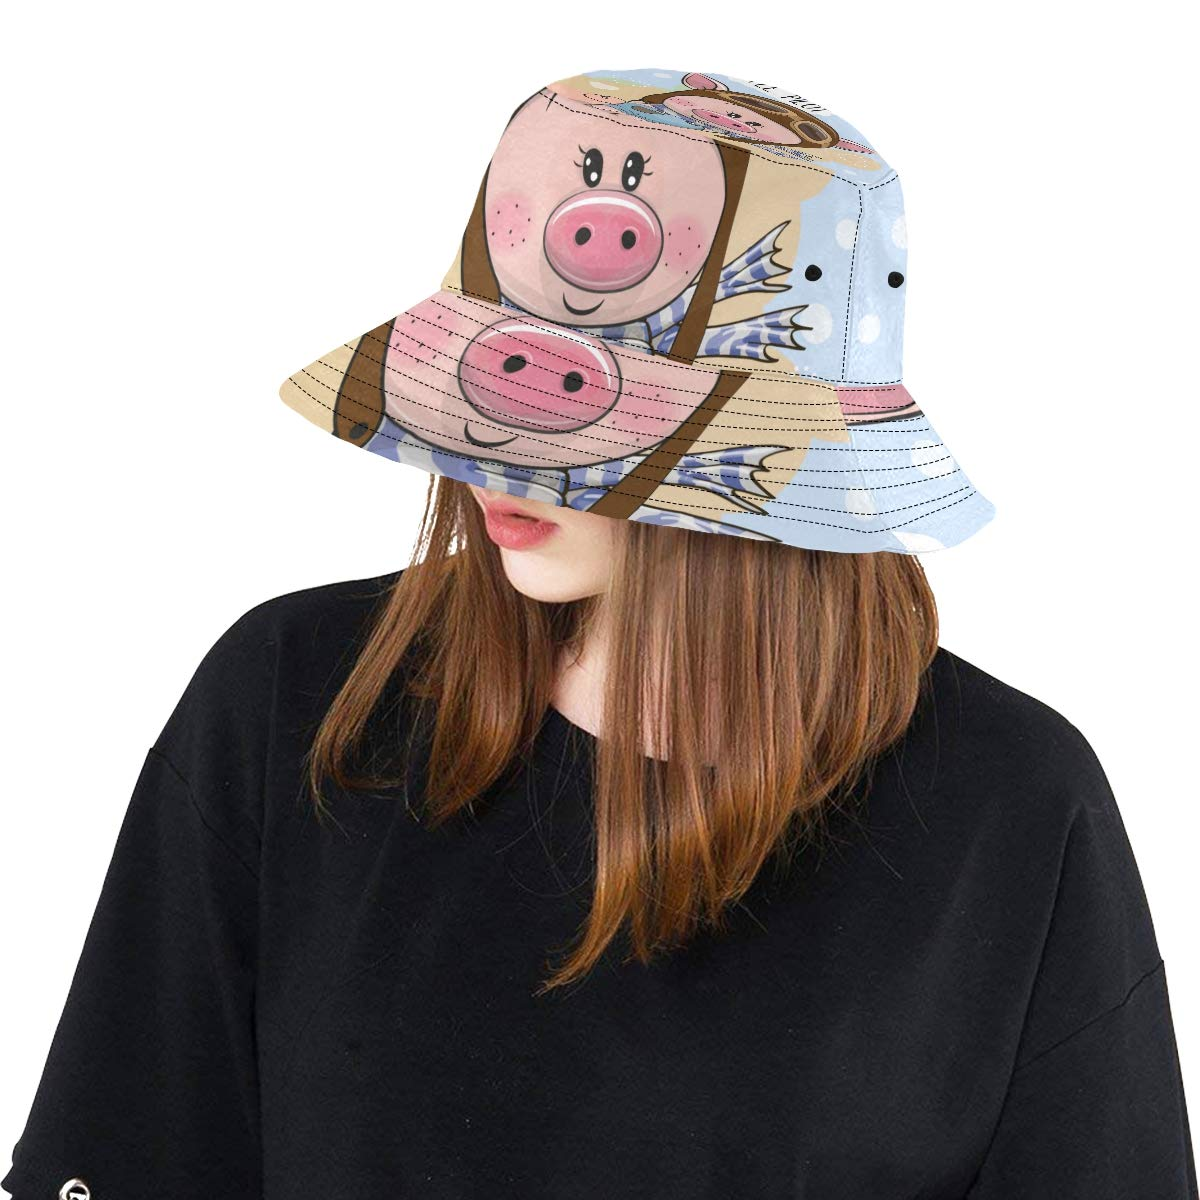 Cute Pig Wear Colorful Scarf New Summer Unisex Cotton Fashion Fishing Sun Bucket Hats for Kid Women and Men with Customize Top Packable Fisherman Cap for Outdoor Travel Teens